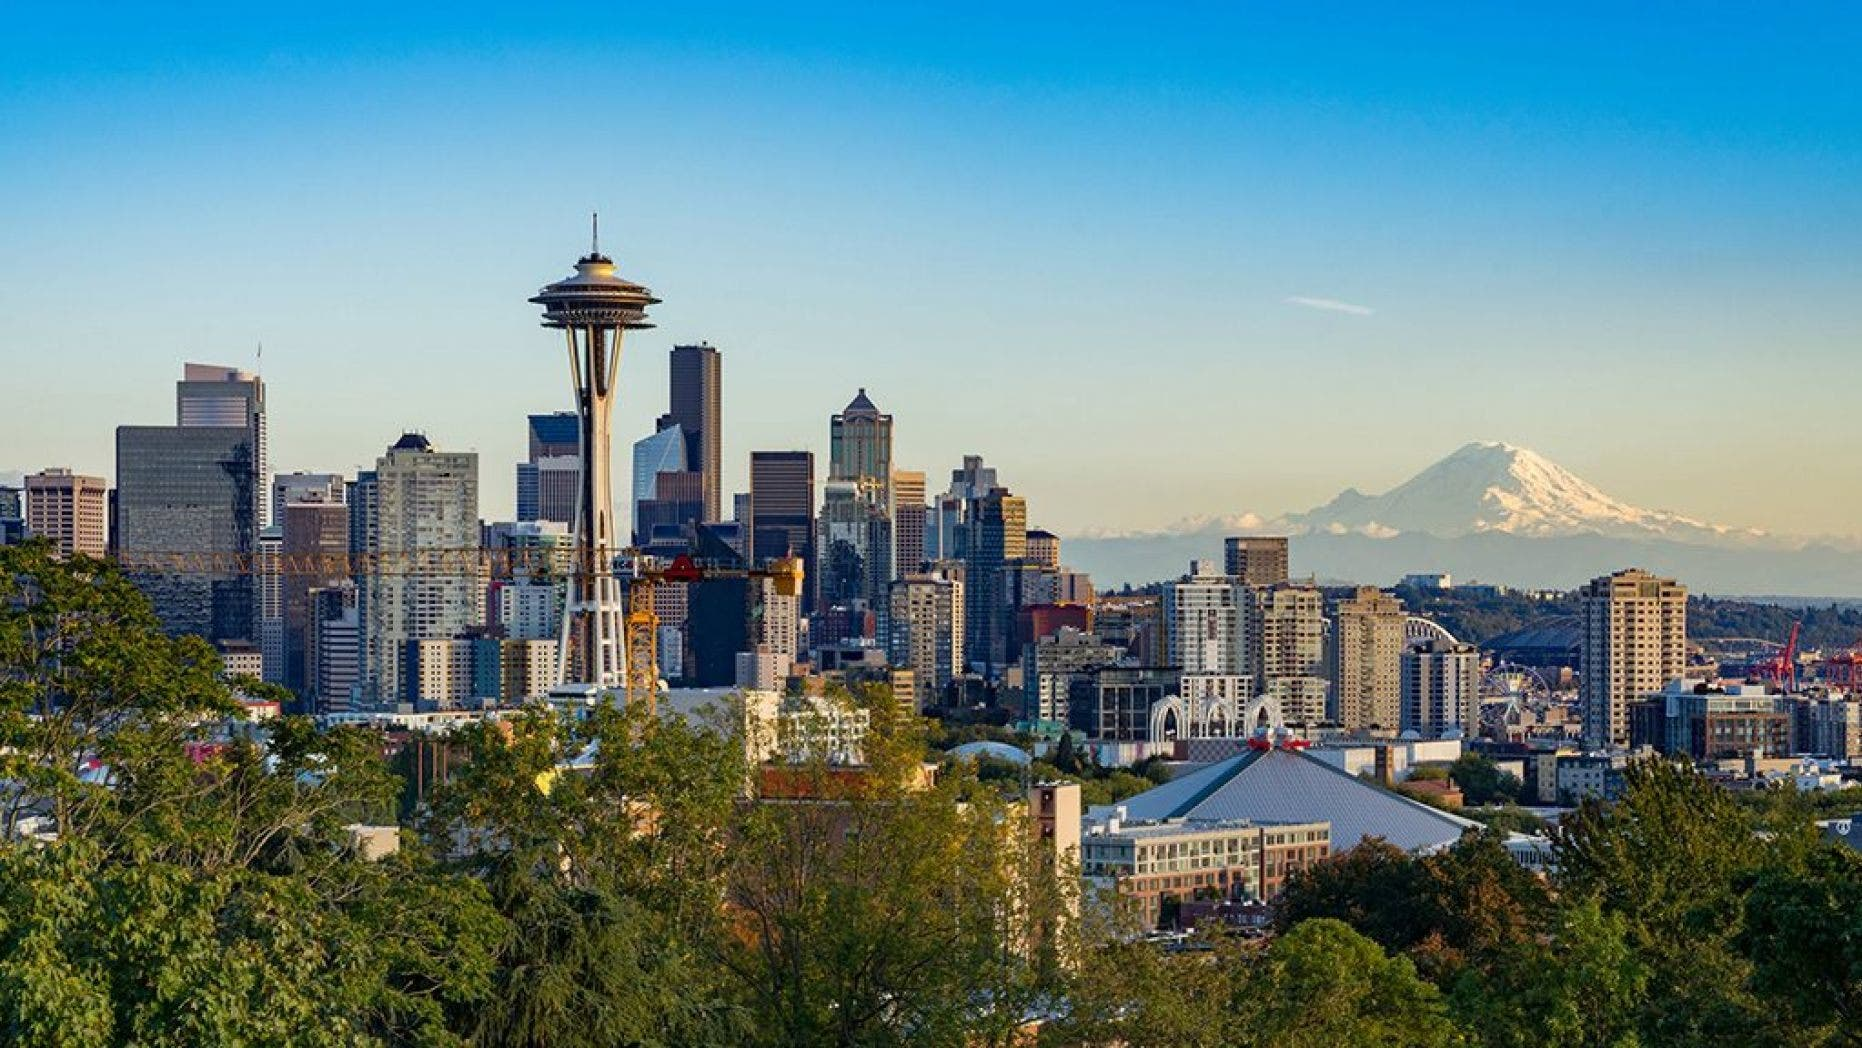 Microsoft promises $500m to fix Greater Seattle's housing affordability 'crisis'